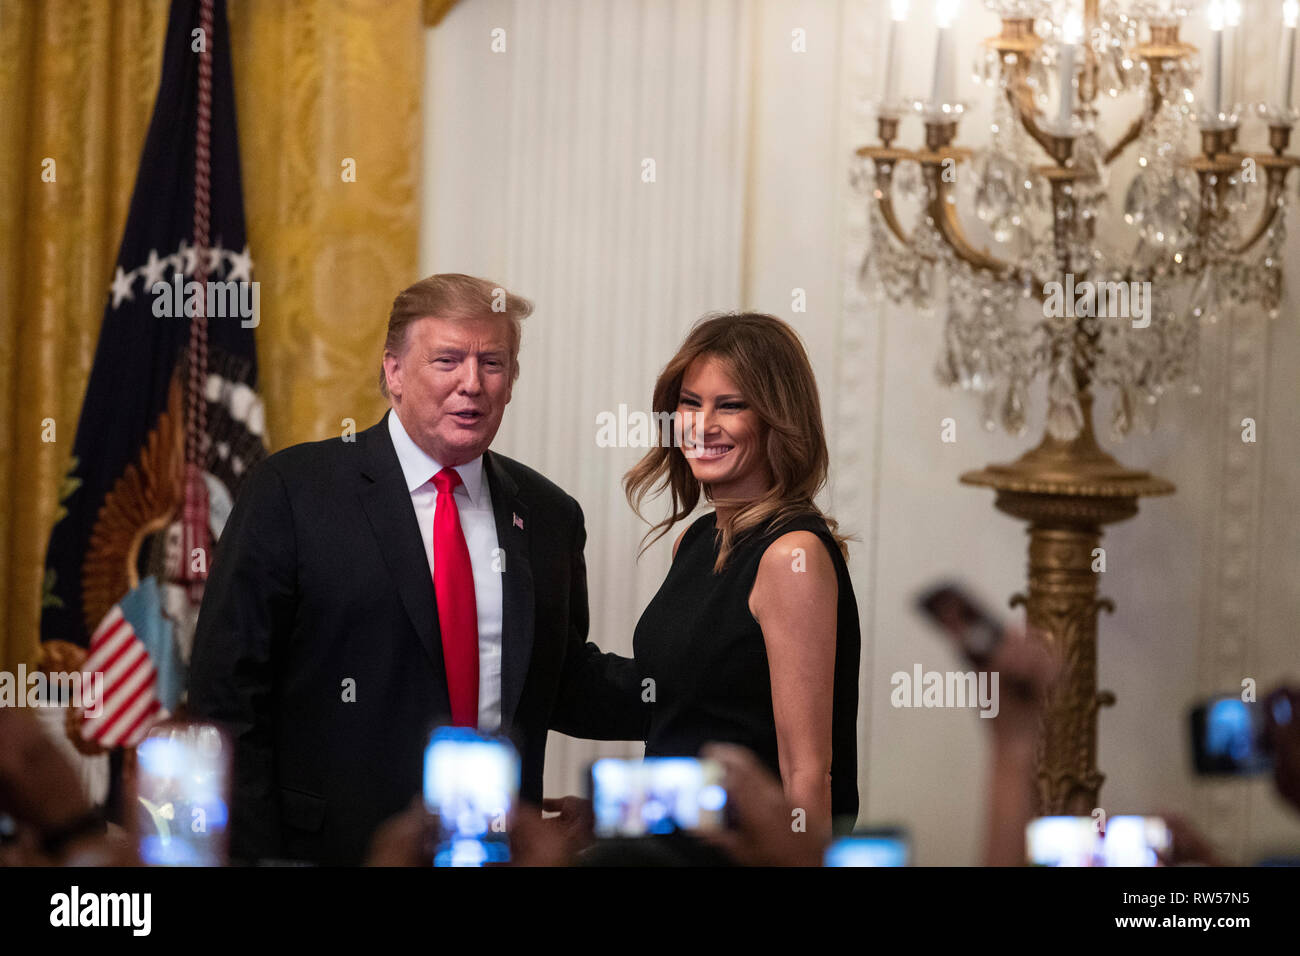 U.S. President Donald Trump and First Lady Melania Trump arrive at a National African American History Month reception in Washington, D.C., U.S., on Thursday, Feb. 21, 2019. - Stock Image